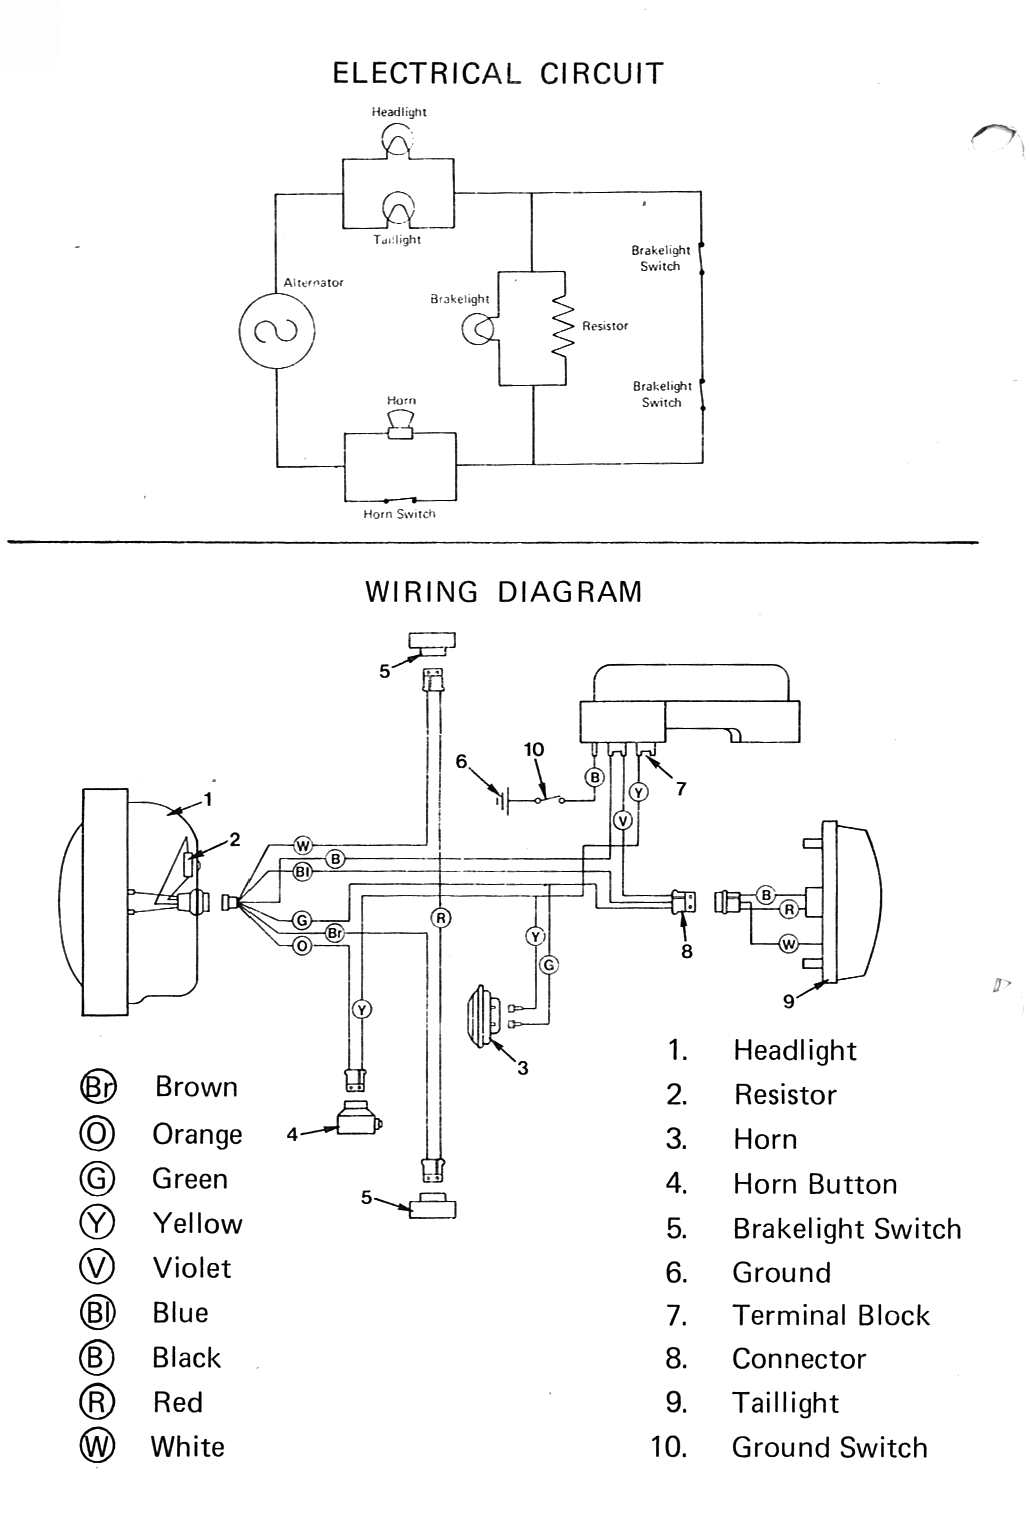 hight resolution of honda x8r wiring diagram schema diagram databasex8r wiring diagram search wiring diagram honda x8r wiring diagram